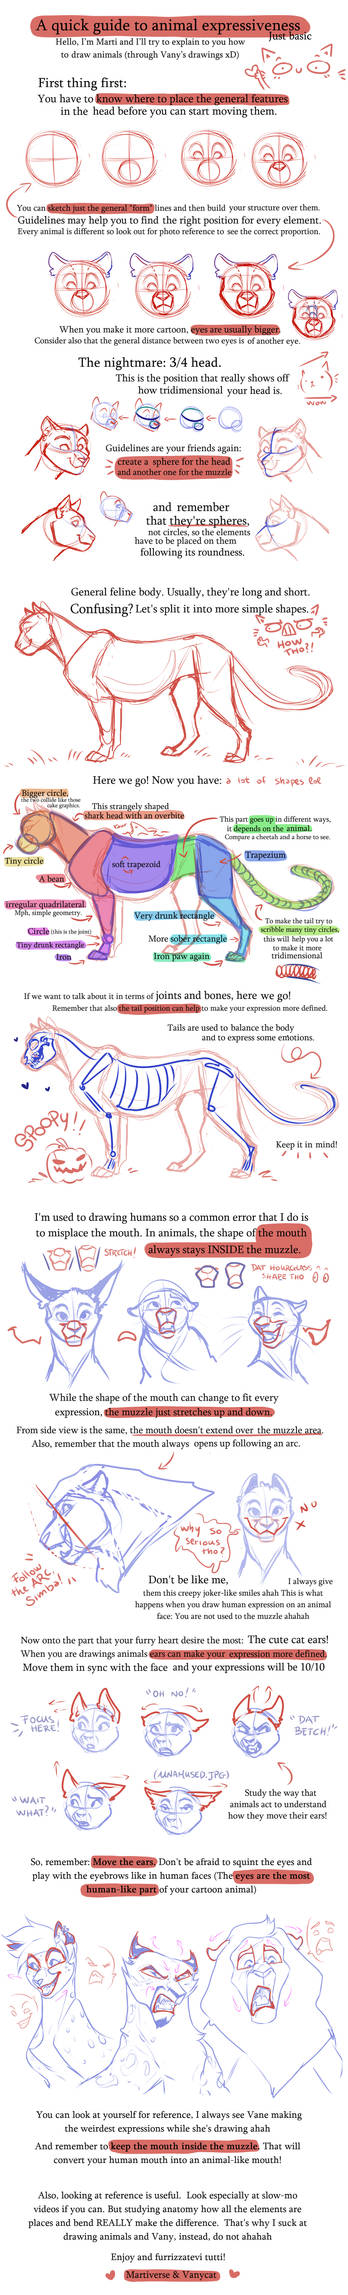 Tips and tricks for feline expressions